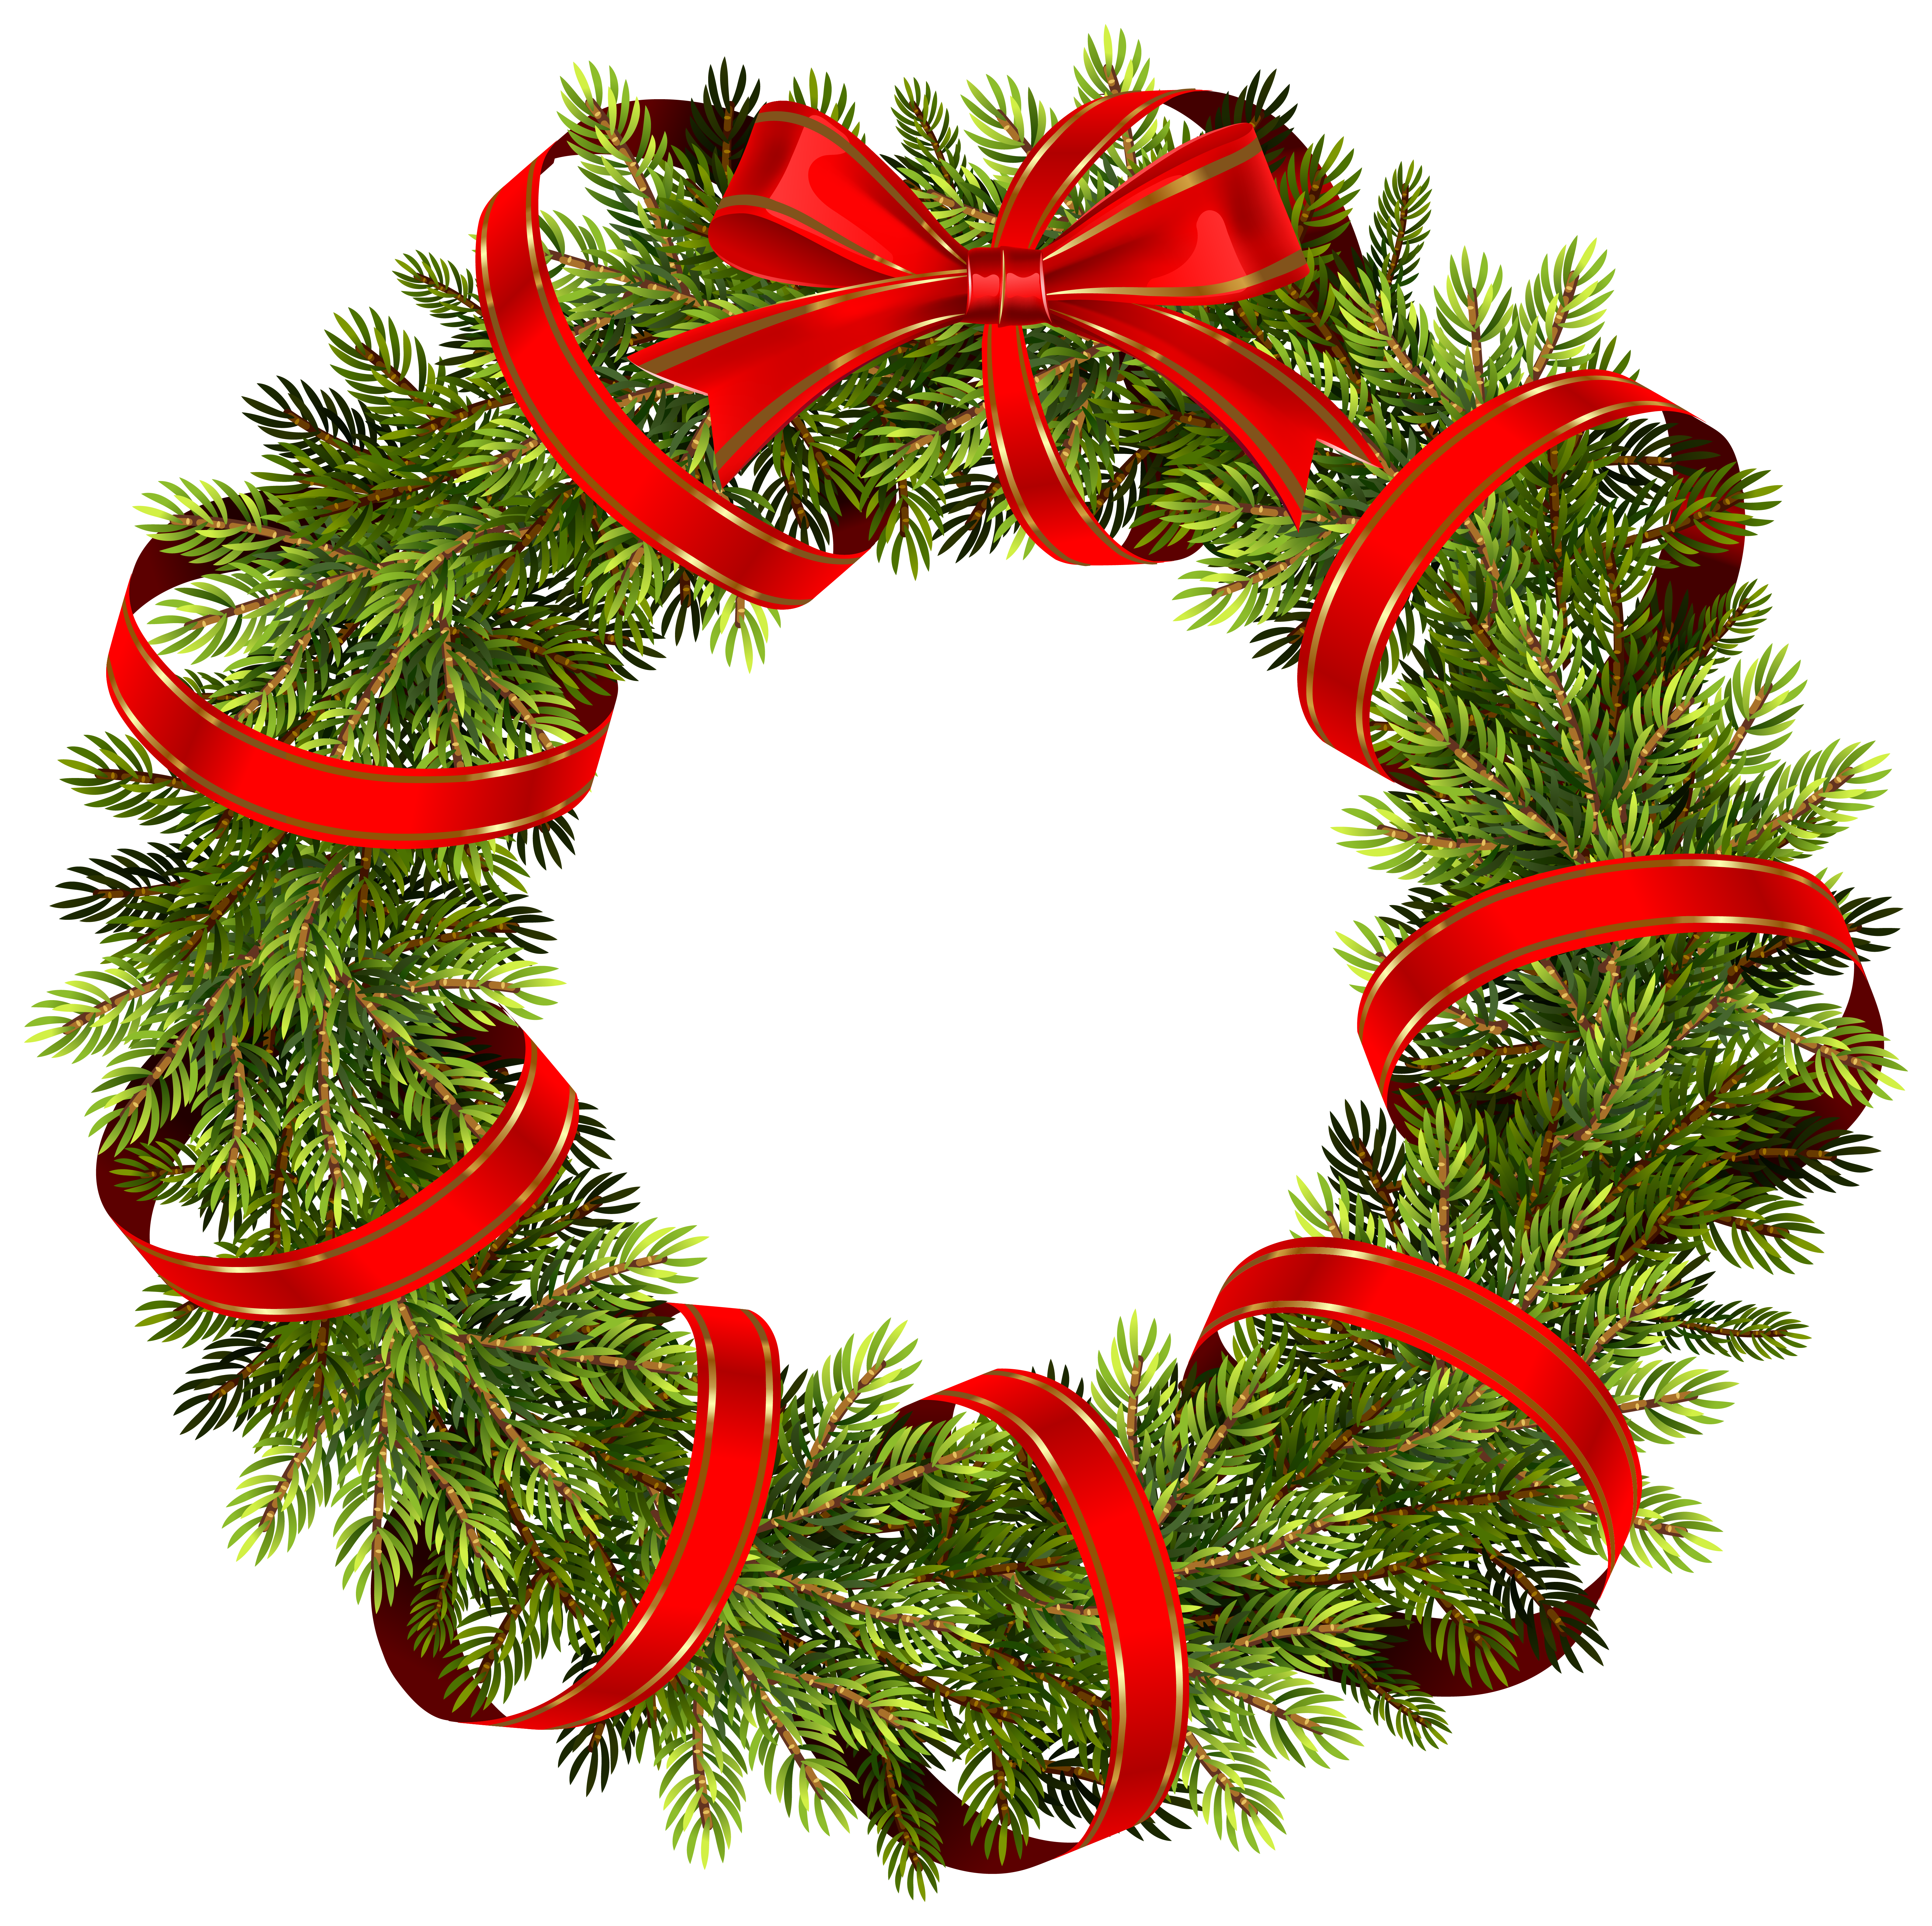 Wreath clipart transparent background  Pine Wreath Christmas with